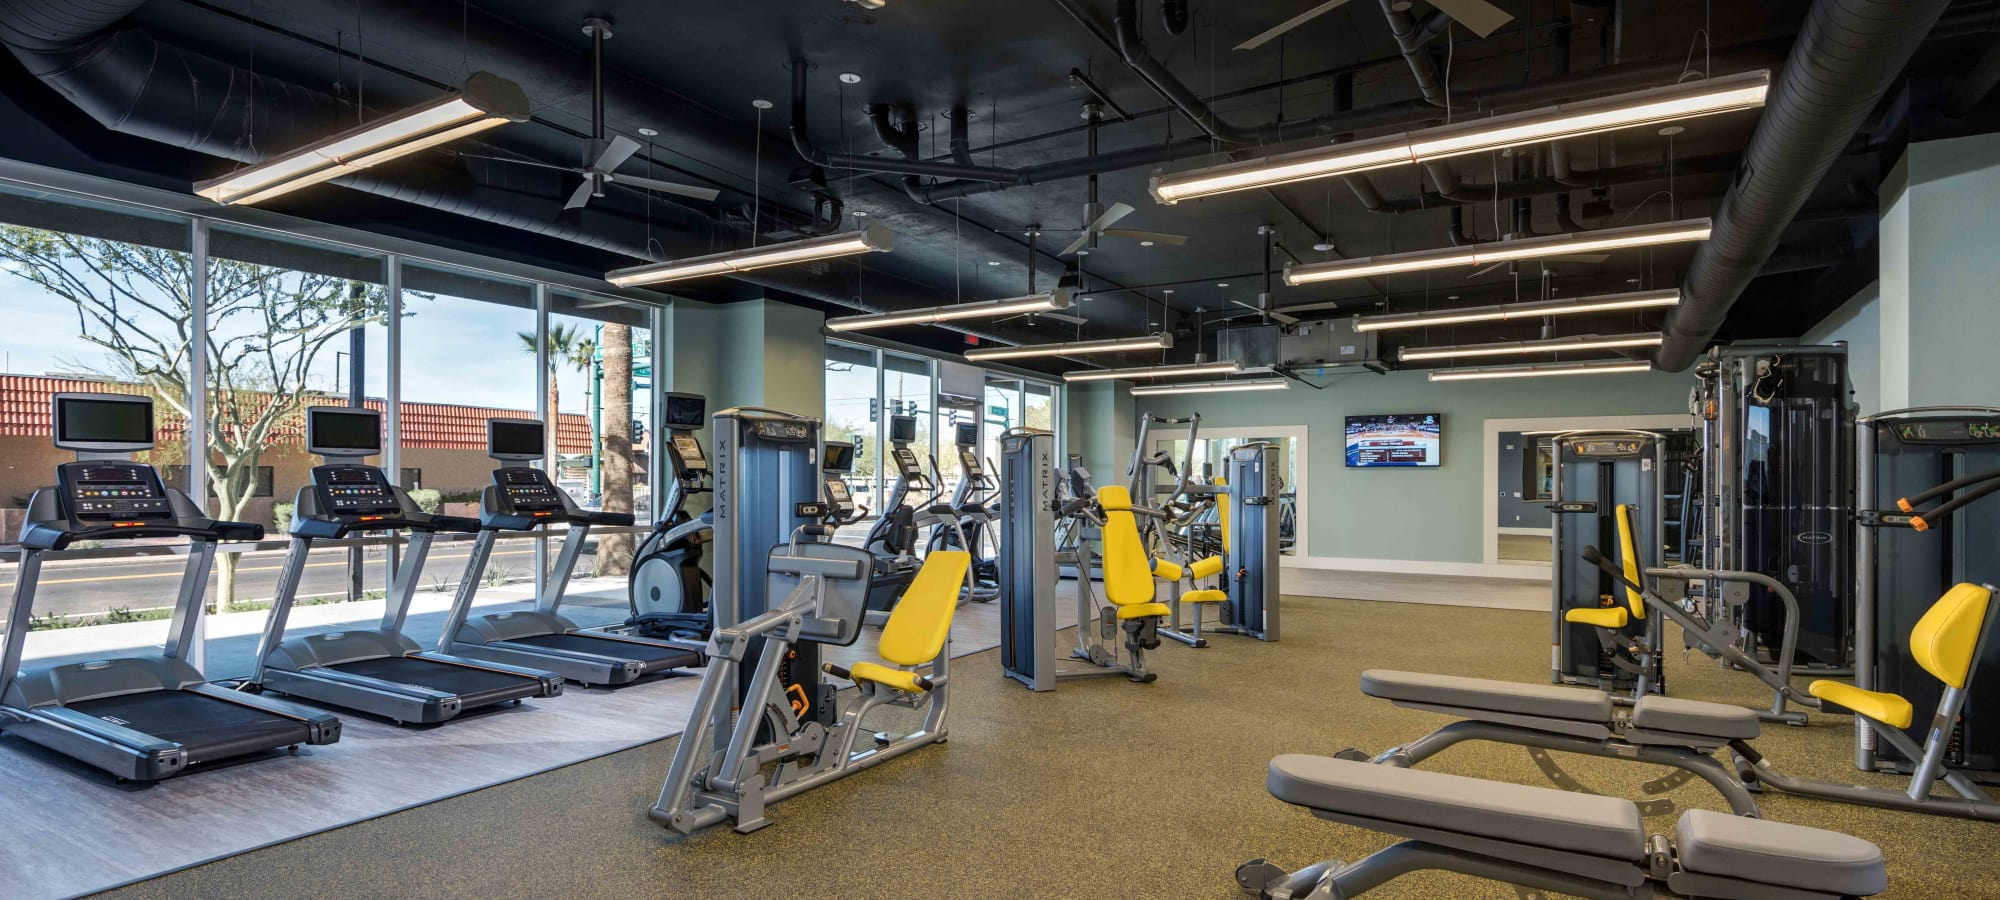 Fully equipped fitness center at Capital Place in Phoenix, Arizona